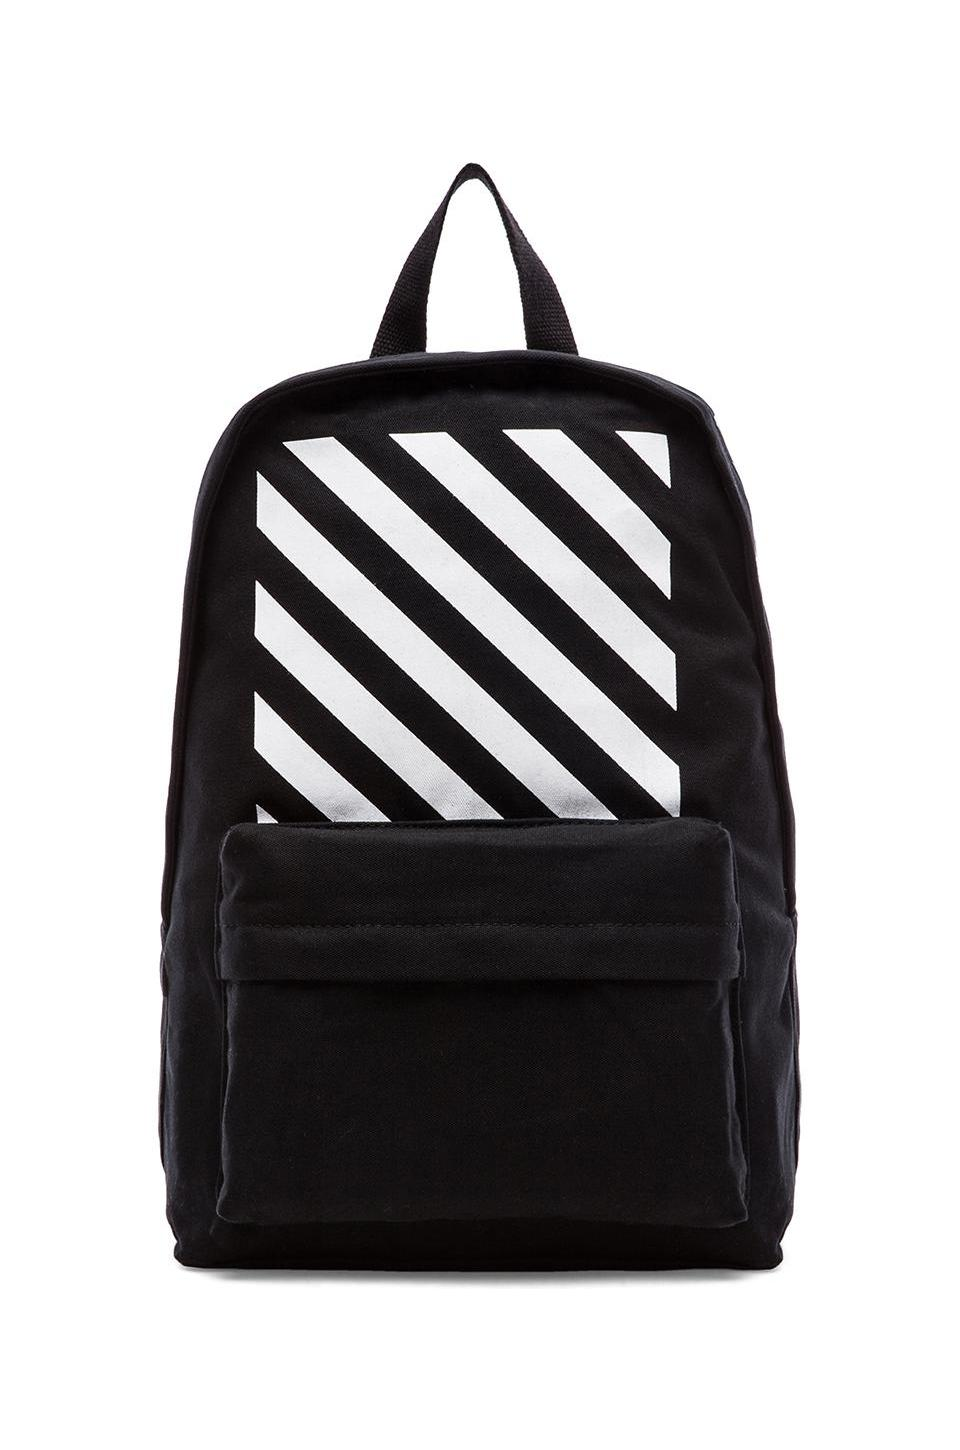 OFF-WHITE Backpack in Black